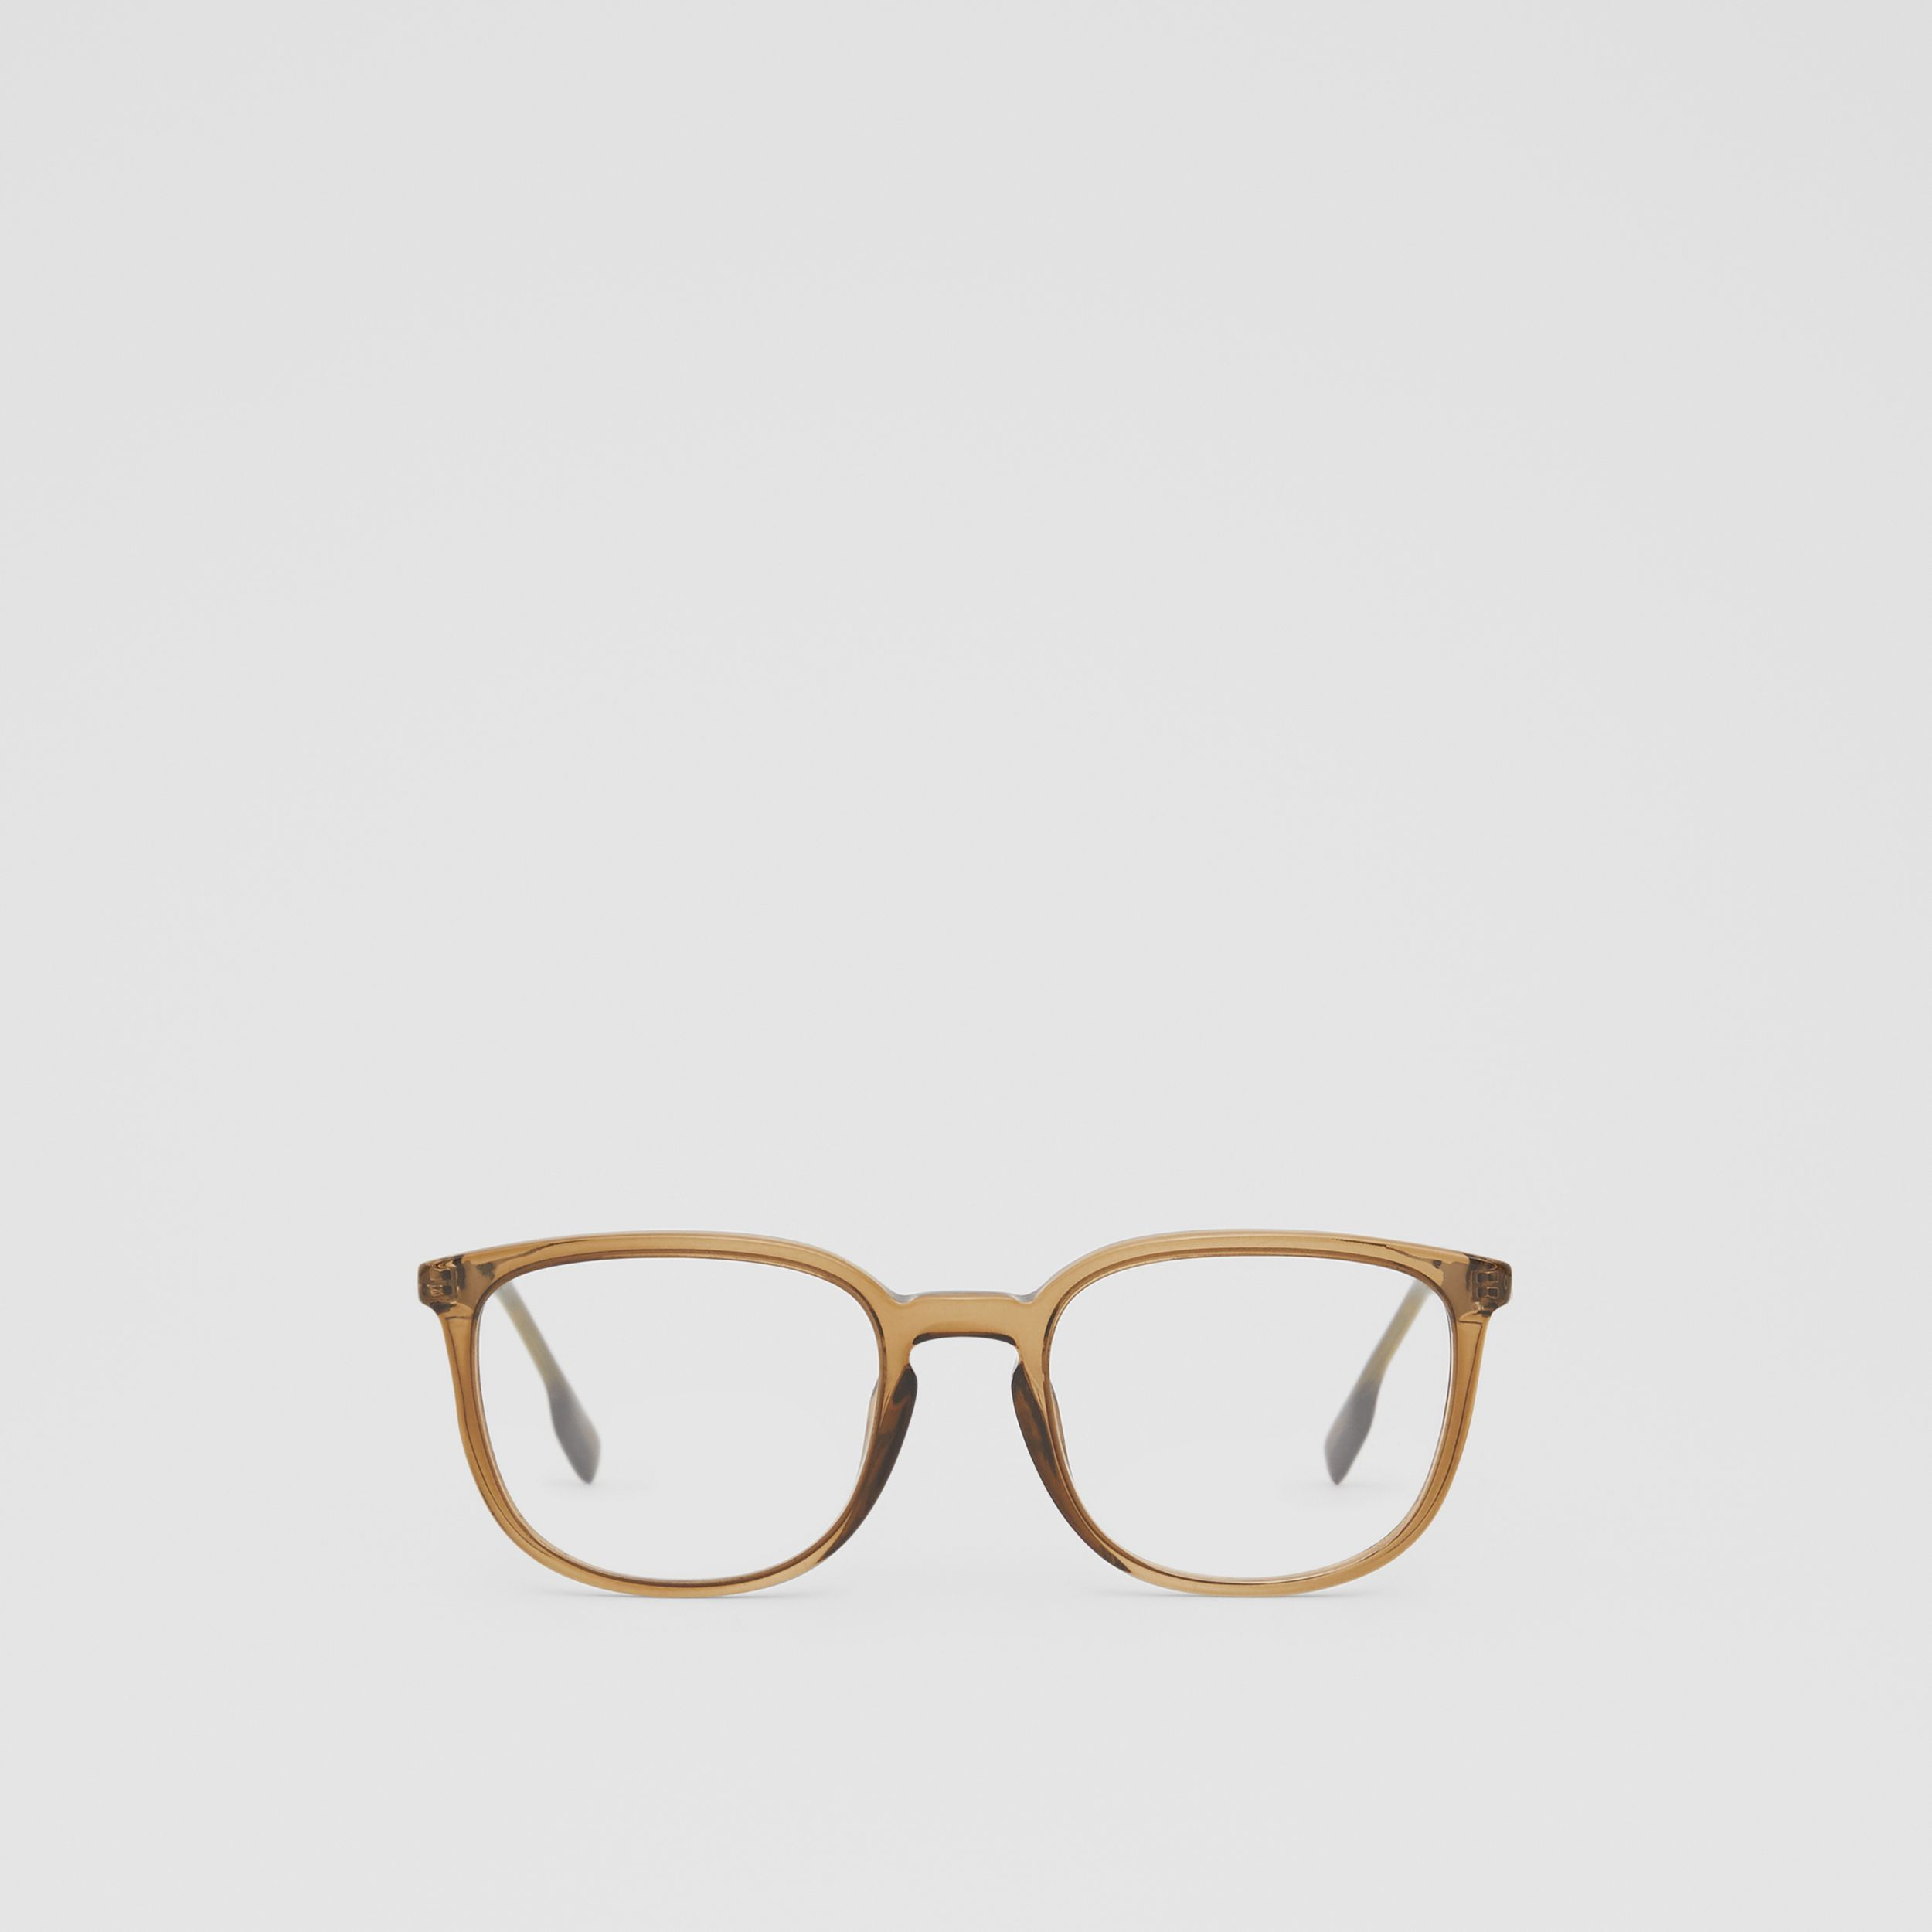 Square Optical Frames in Olive Green | Burberry - 1